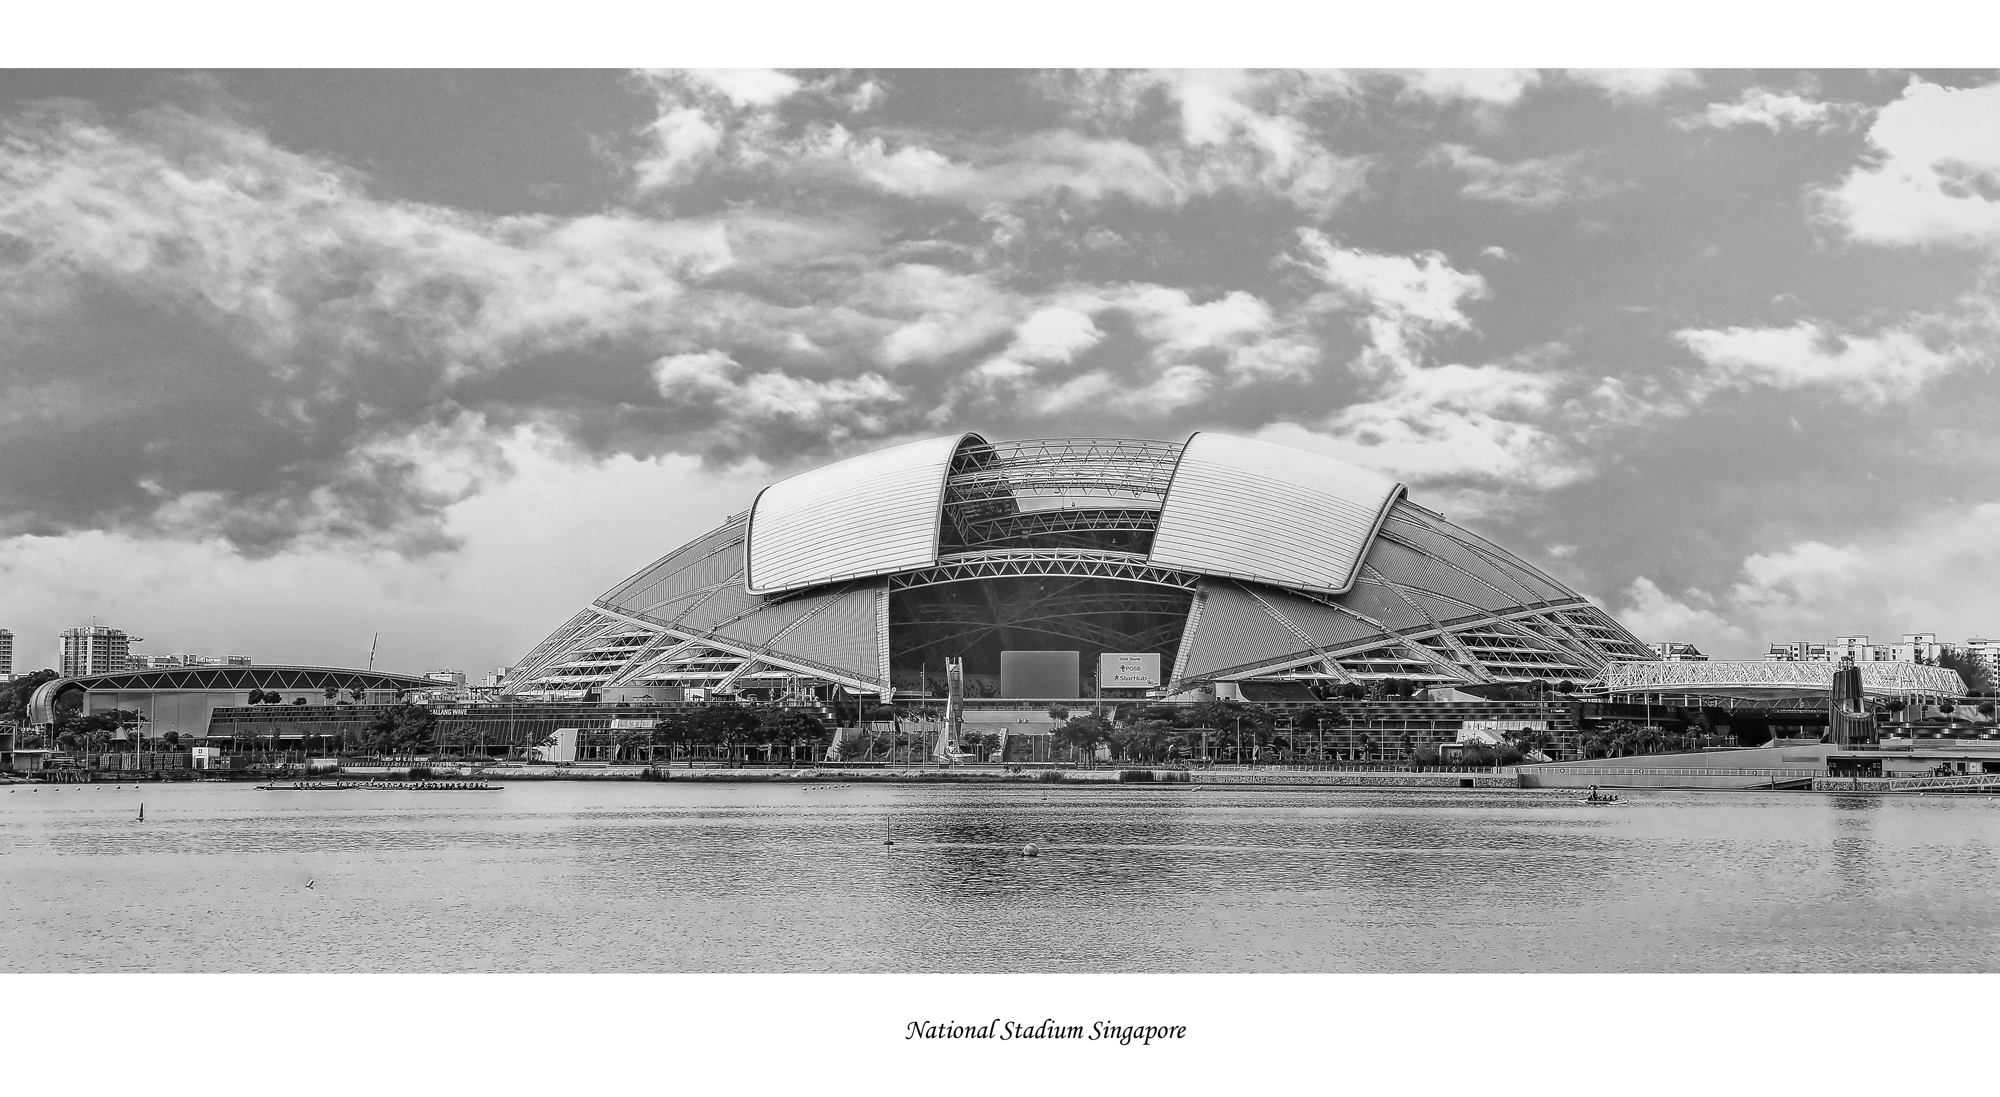 National Stadium Singapore, Architecture Photography